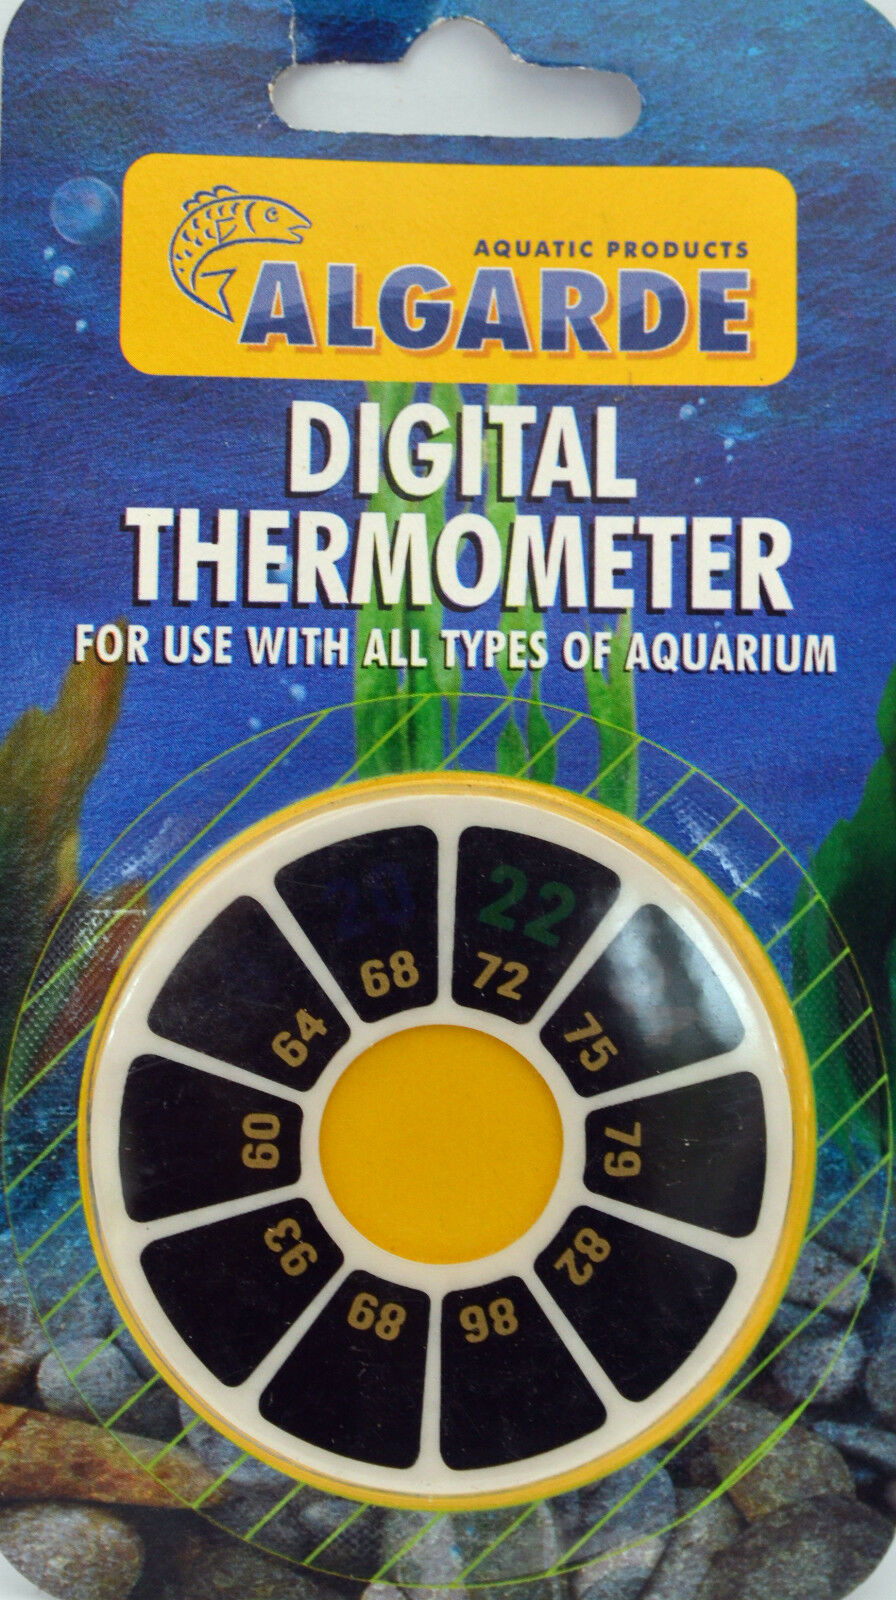 Algarde Digital Thermometer